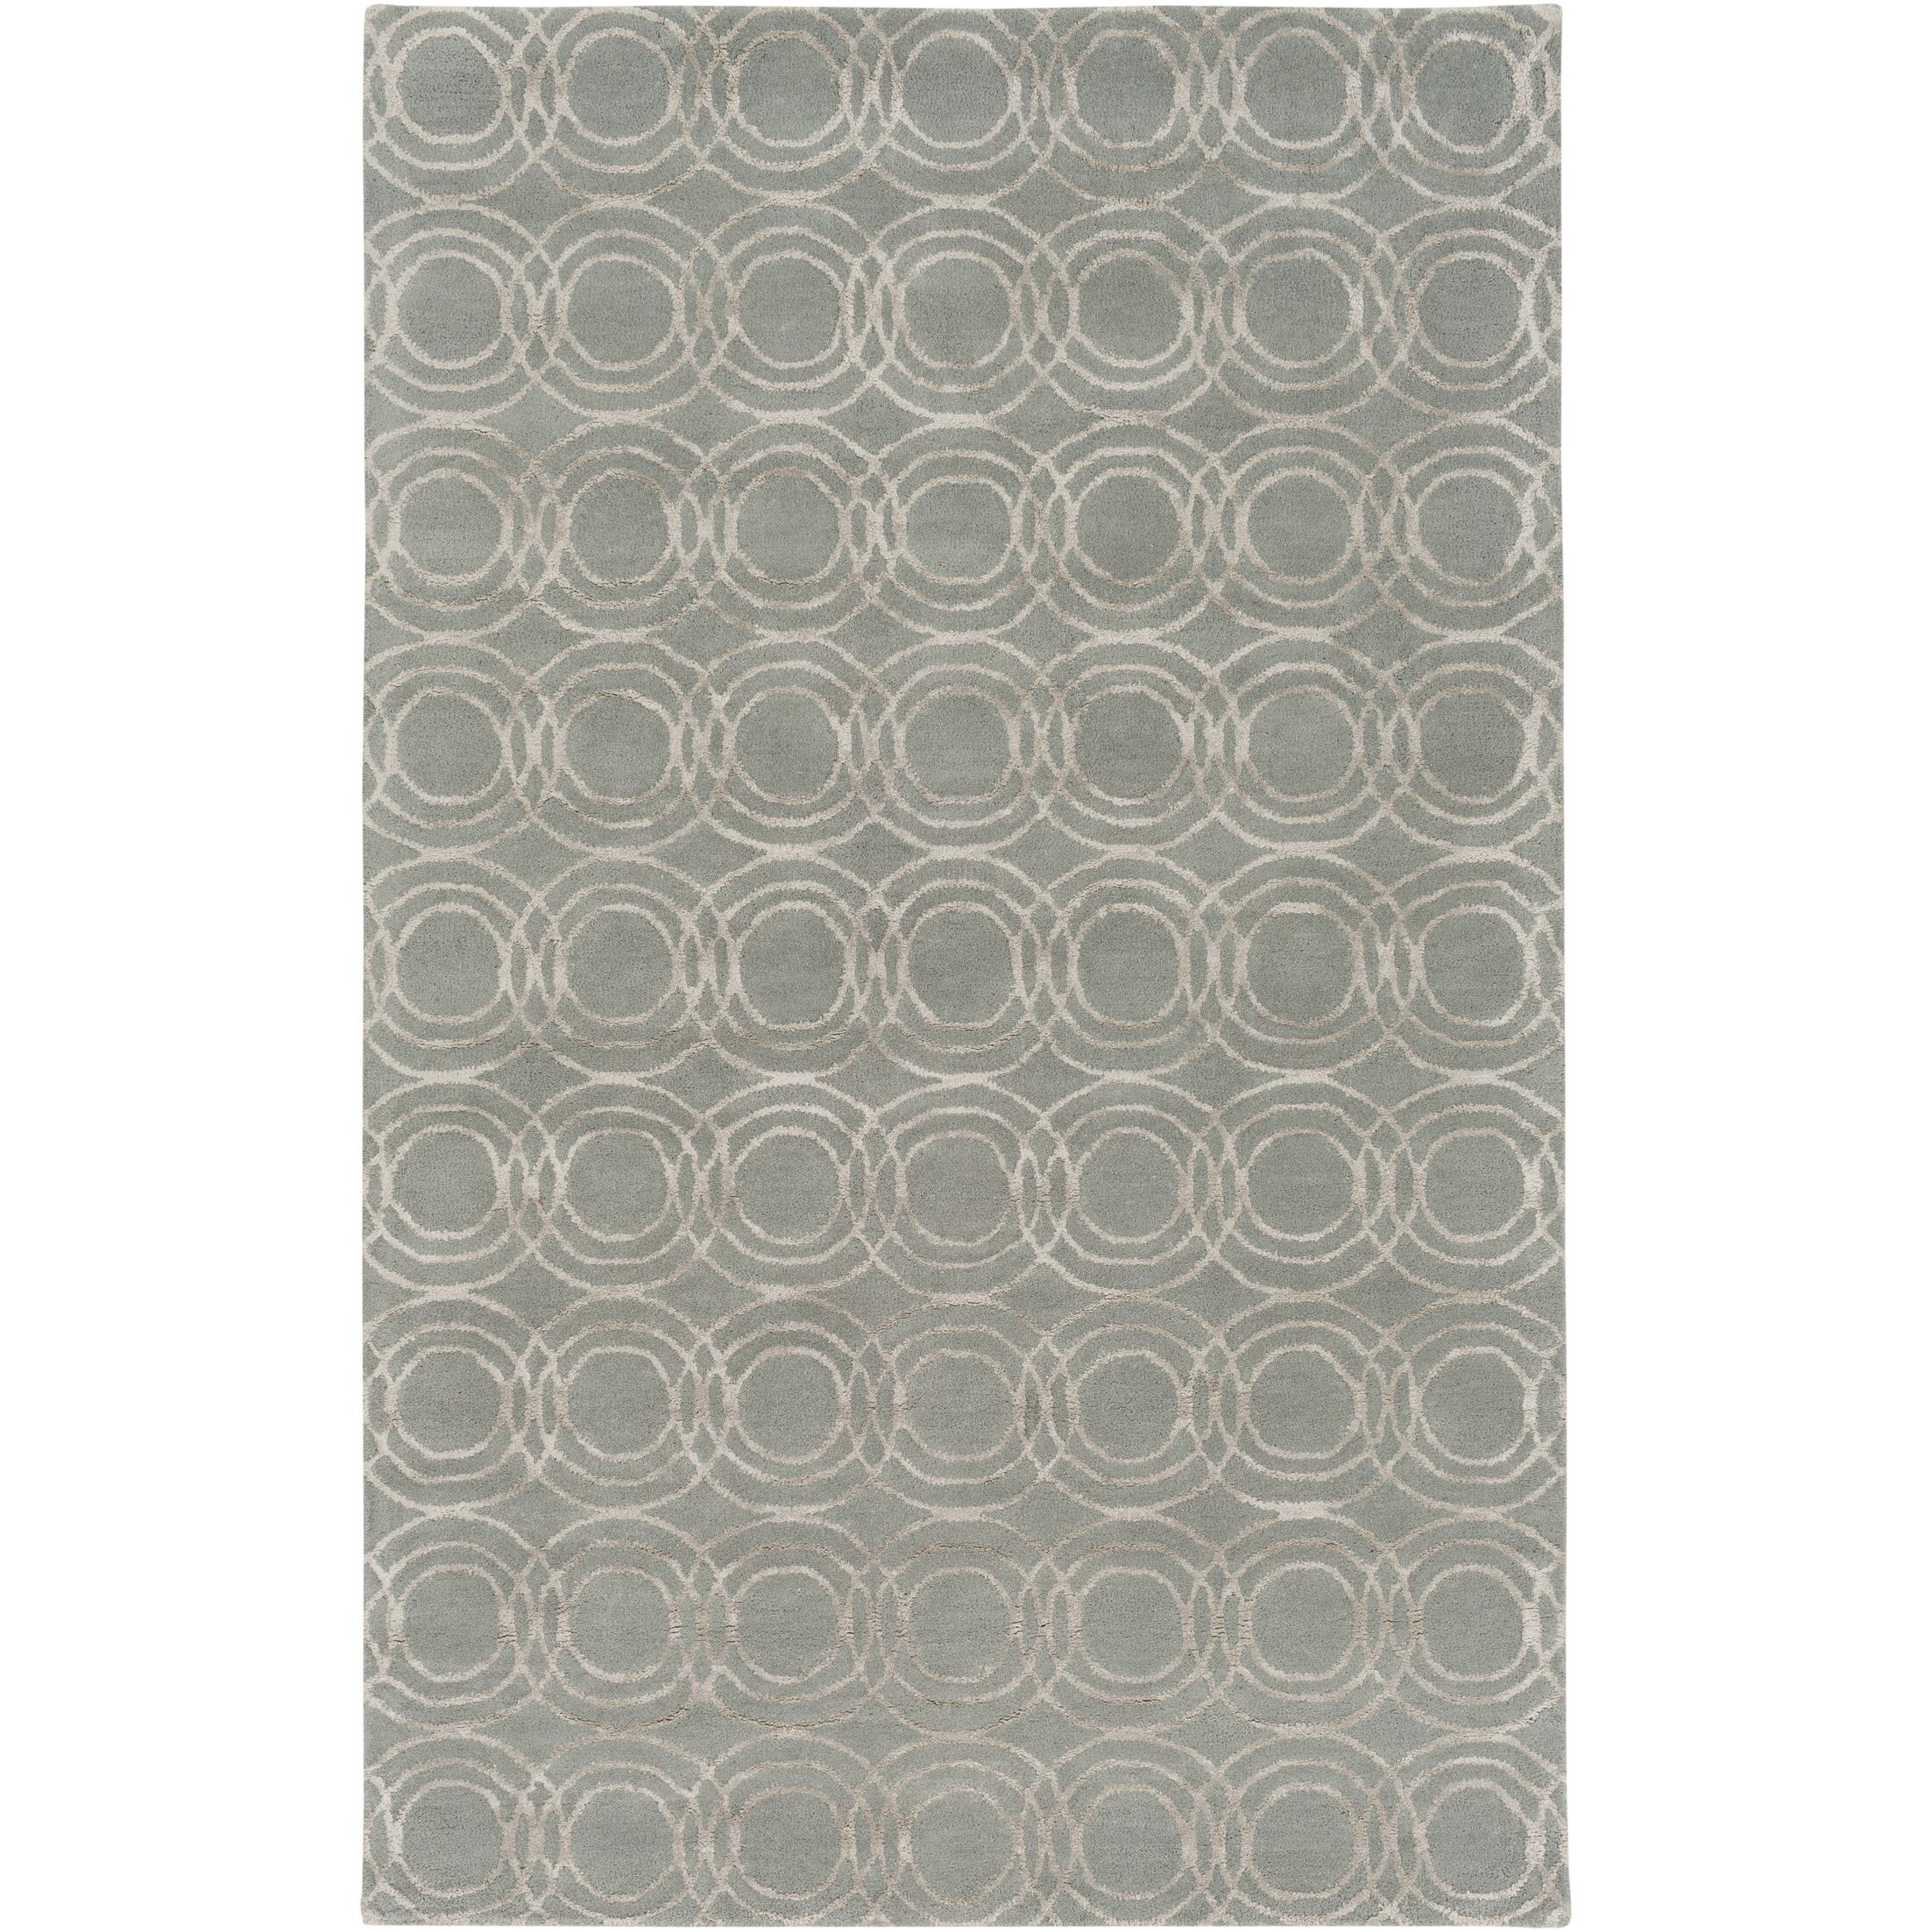 Meader Hand-Tufted Light Gray/Khaki Area Rug Rug Size: Rectangle 8' x 10'